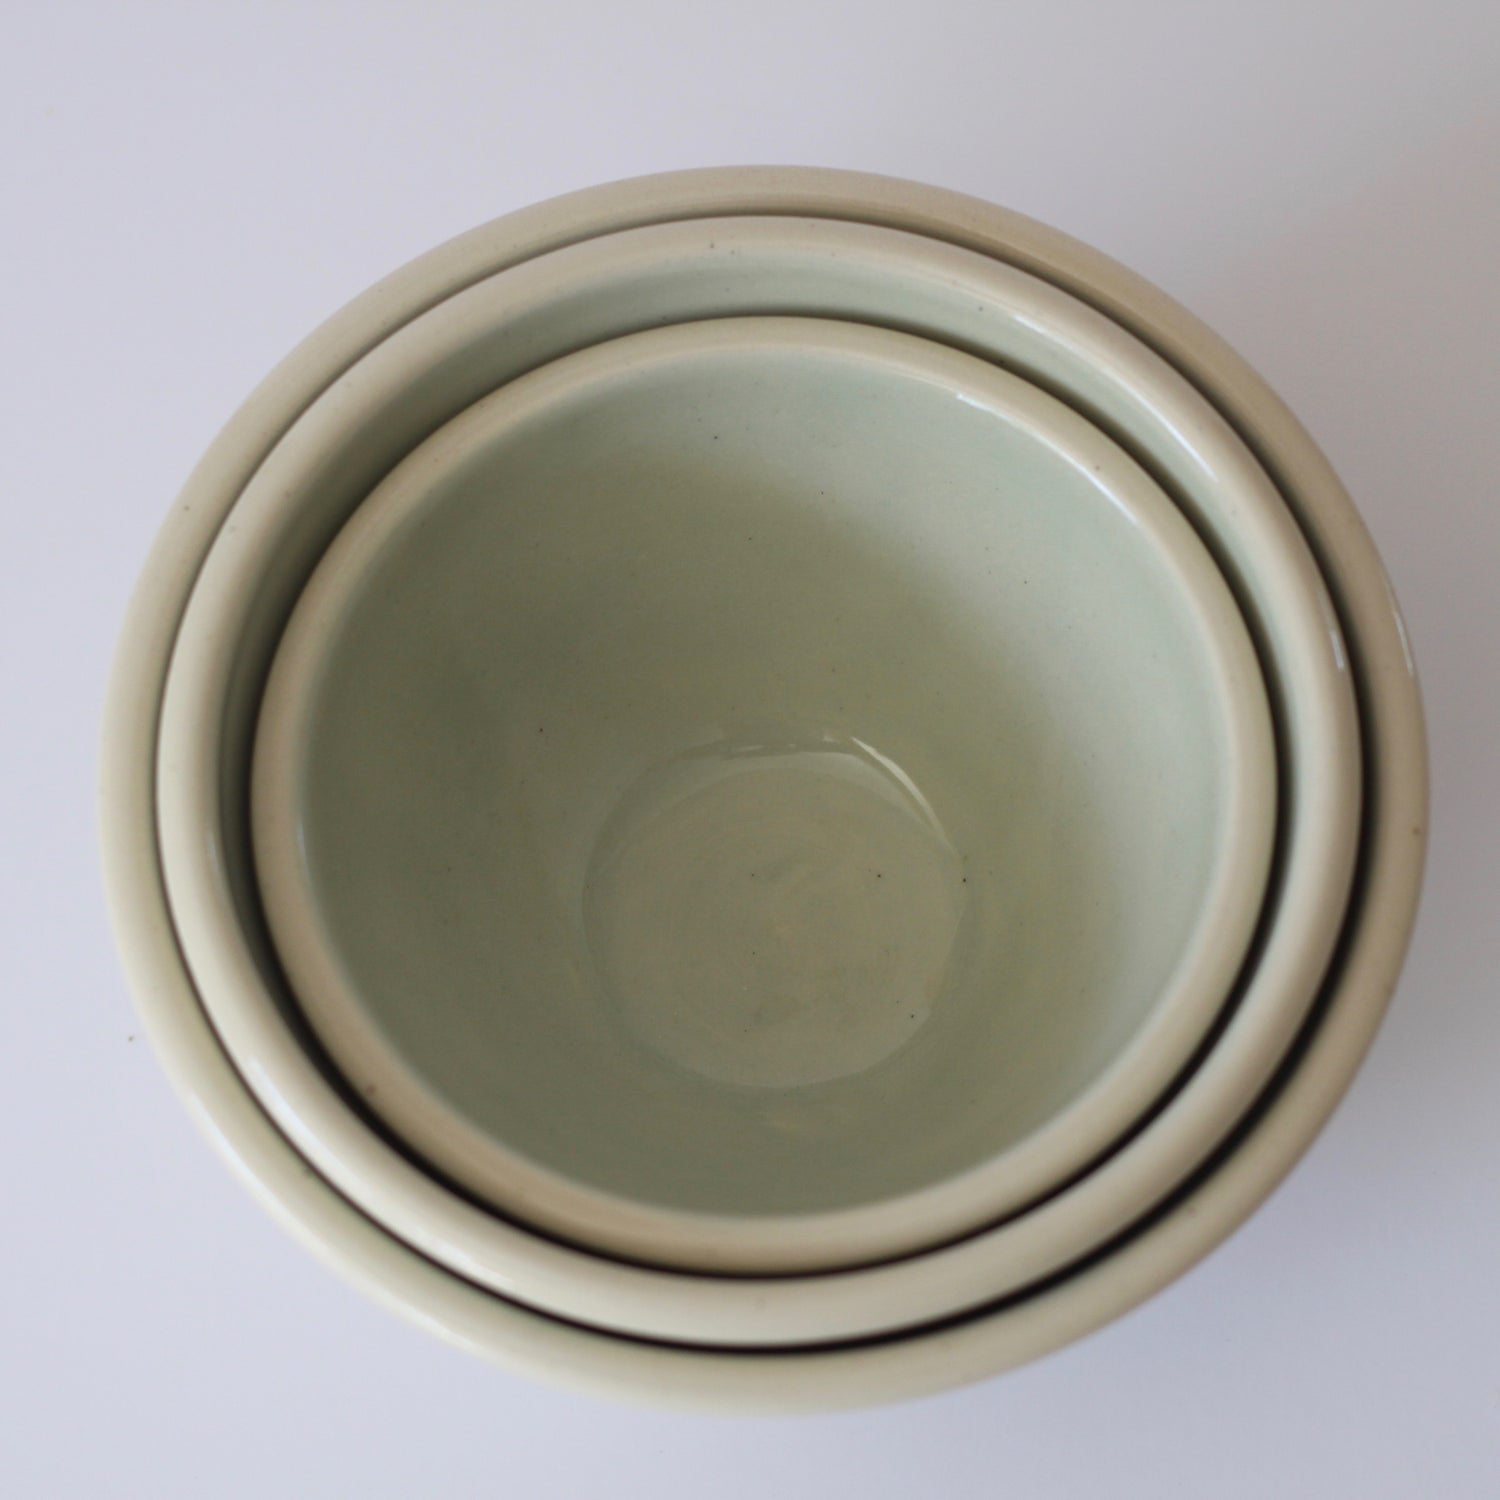 Image of Ceramic Nesting Matching 3 Bowl Set | White and Light Green Bowl Set | Ready to Ship